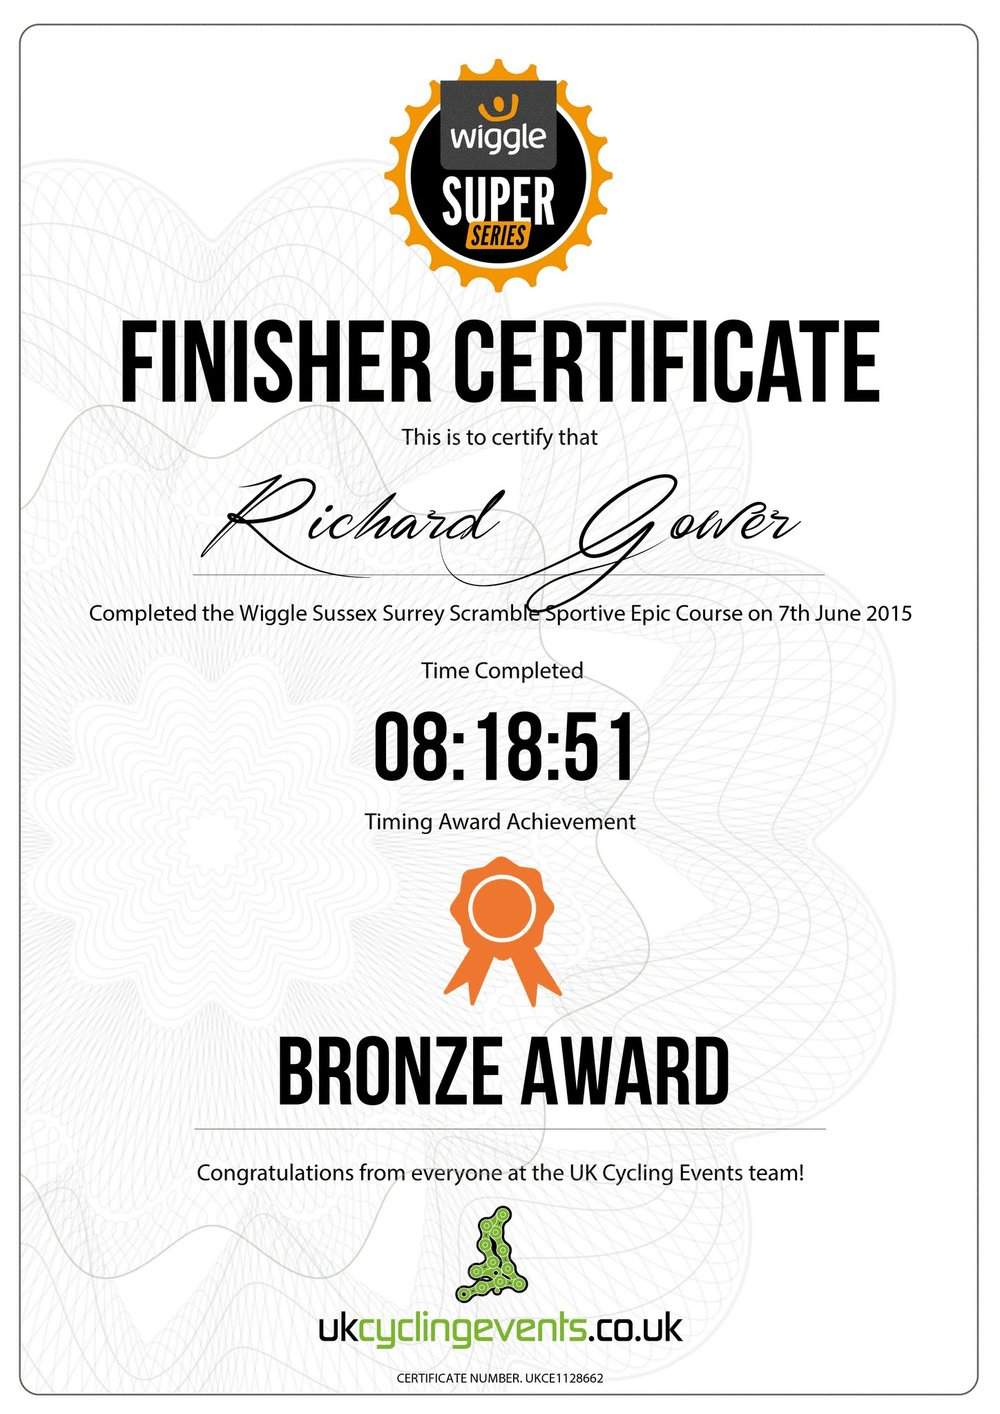 RichardGowerCertificate - Wiggle Sussex Surrey June 7 2015.jpg